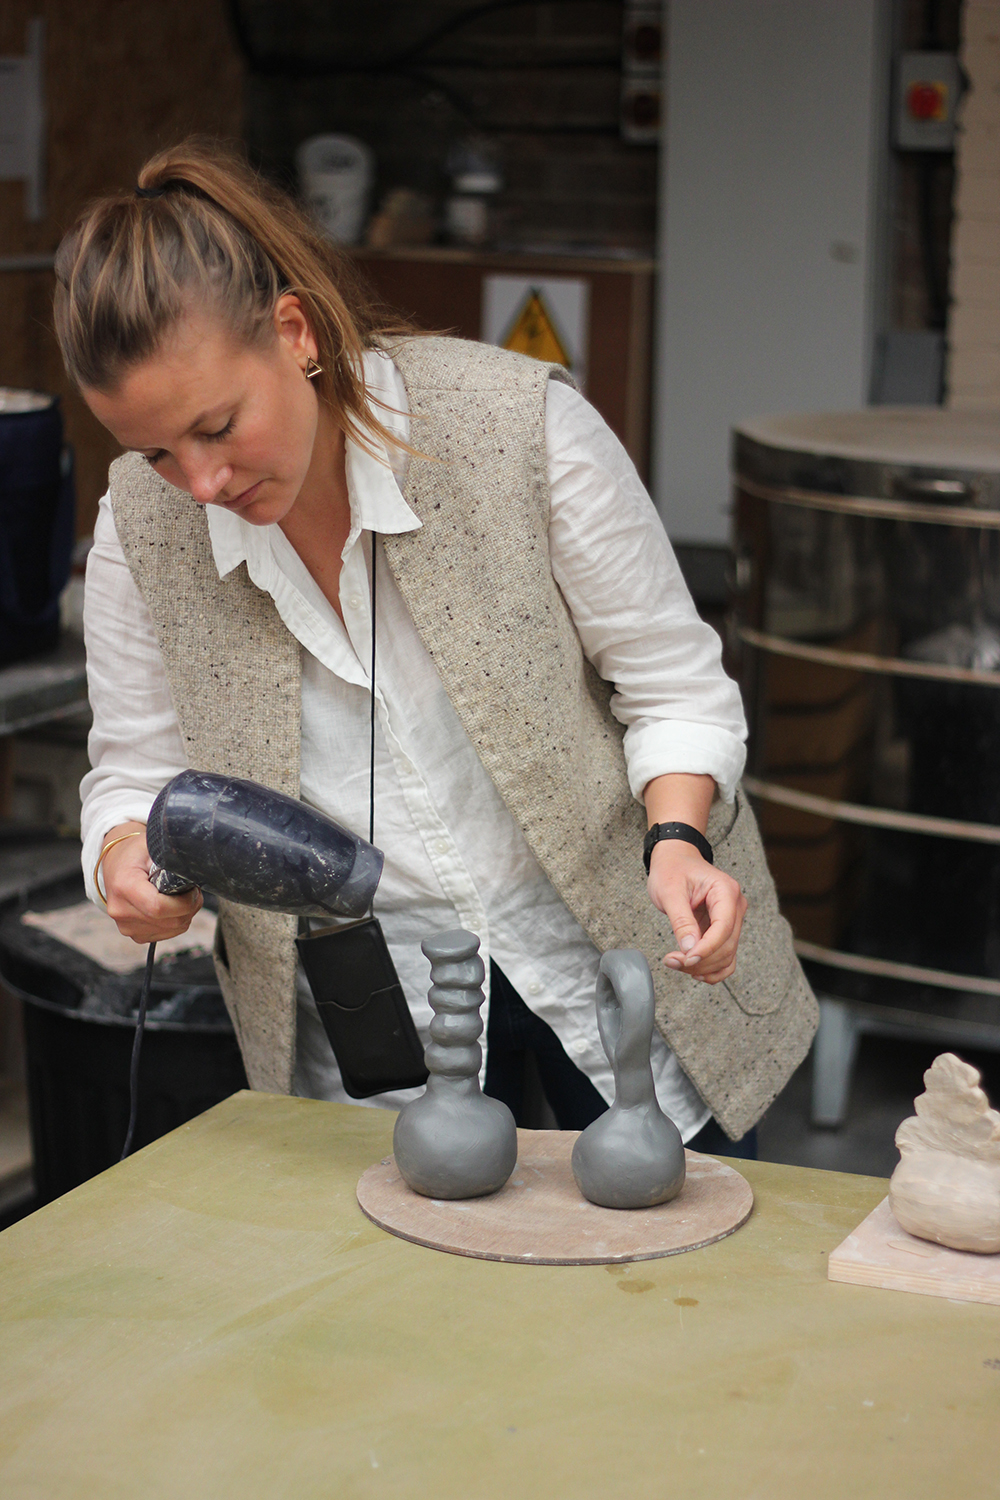 lowres-milan-maraca-workshop-heyclay20194.jpg